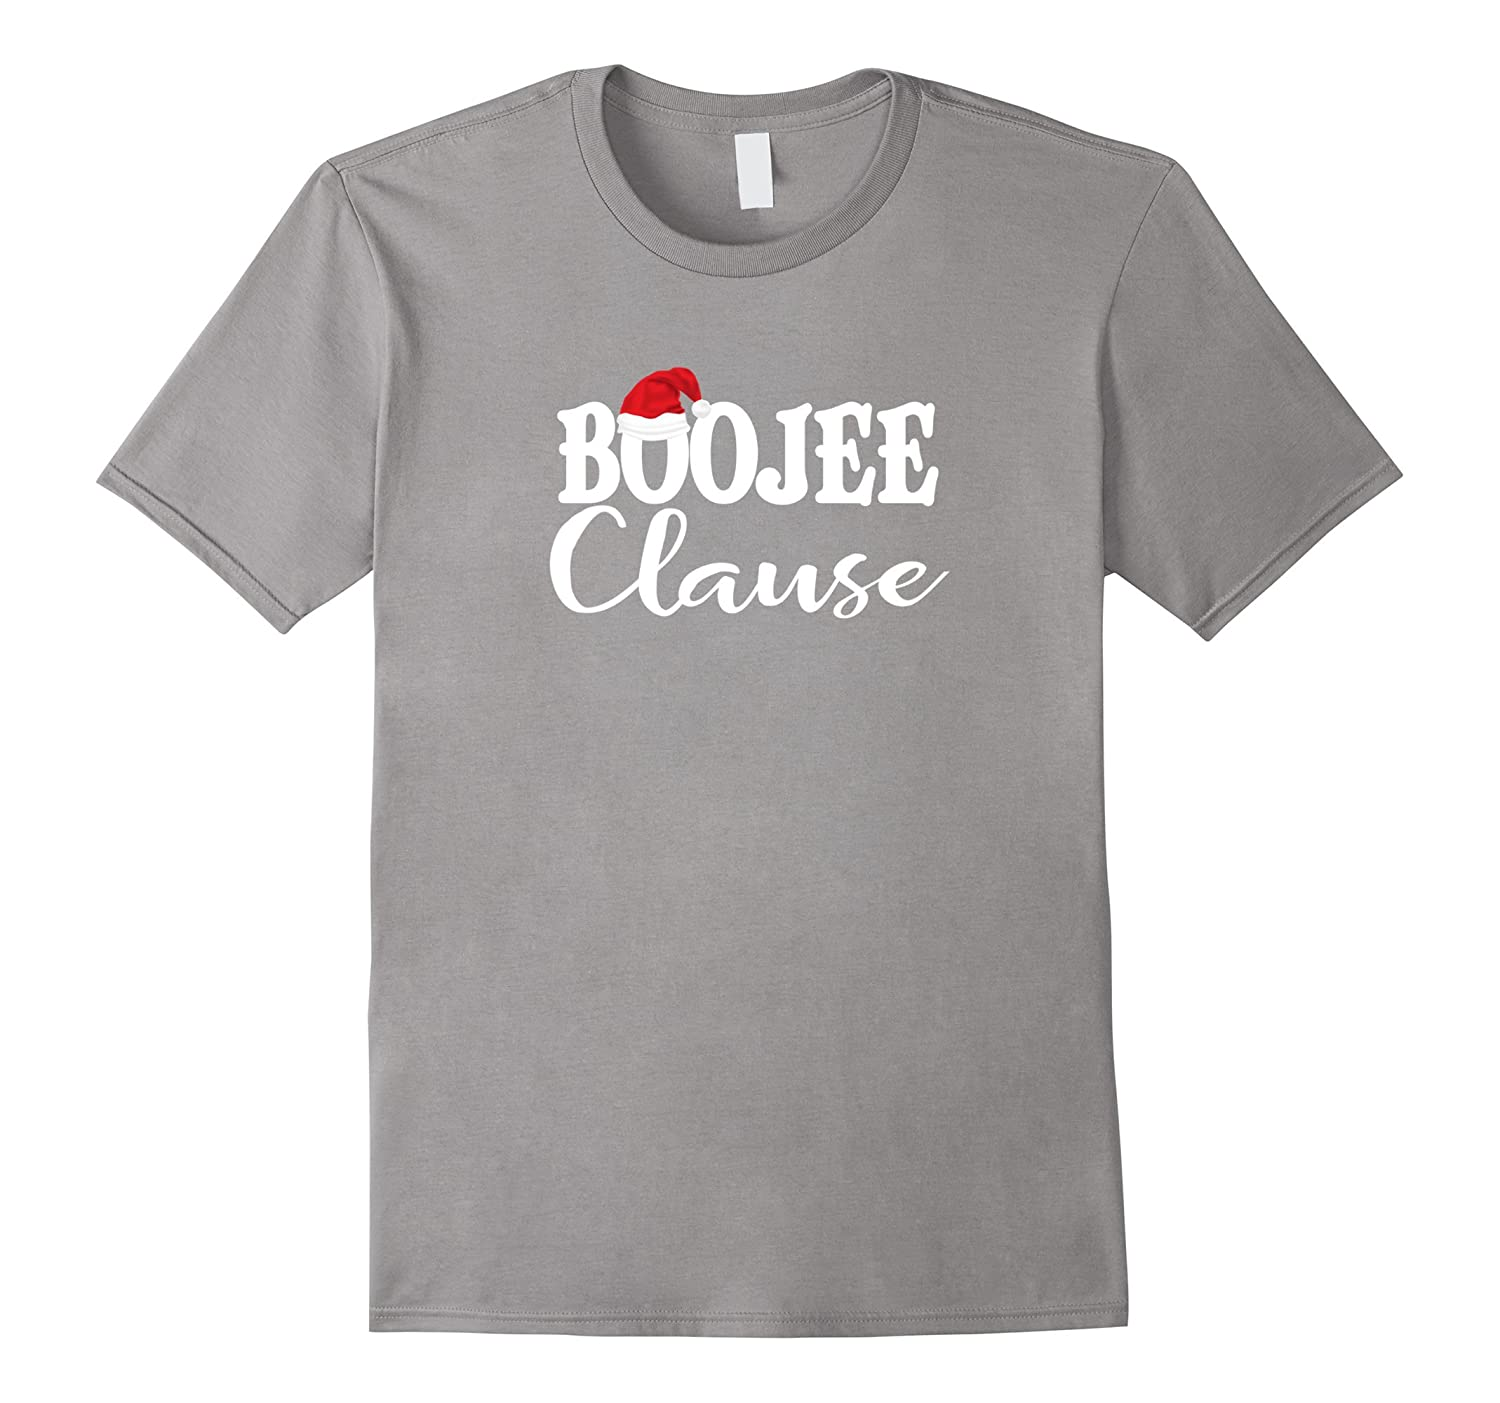 Boojee Clause Tshirt Funny Christmas Ugly Party Shirt-Teevkd